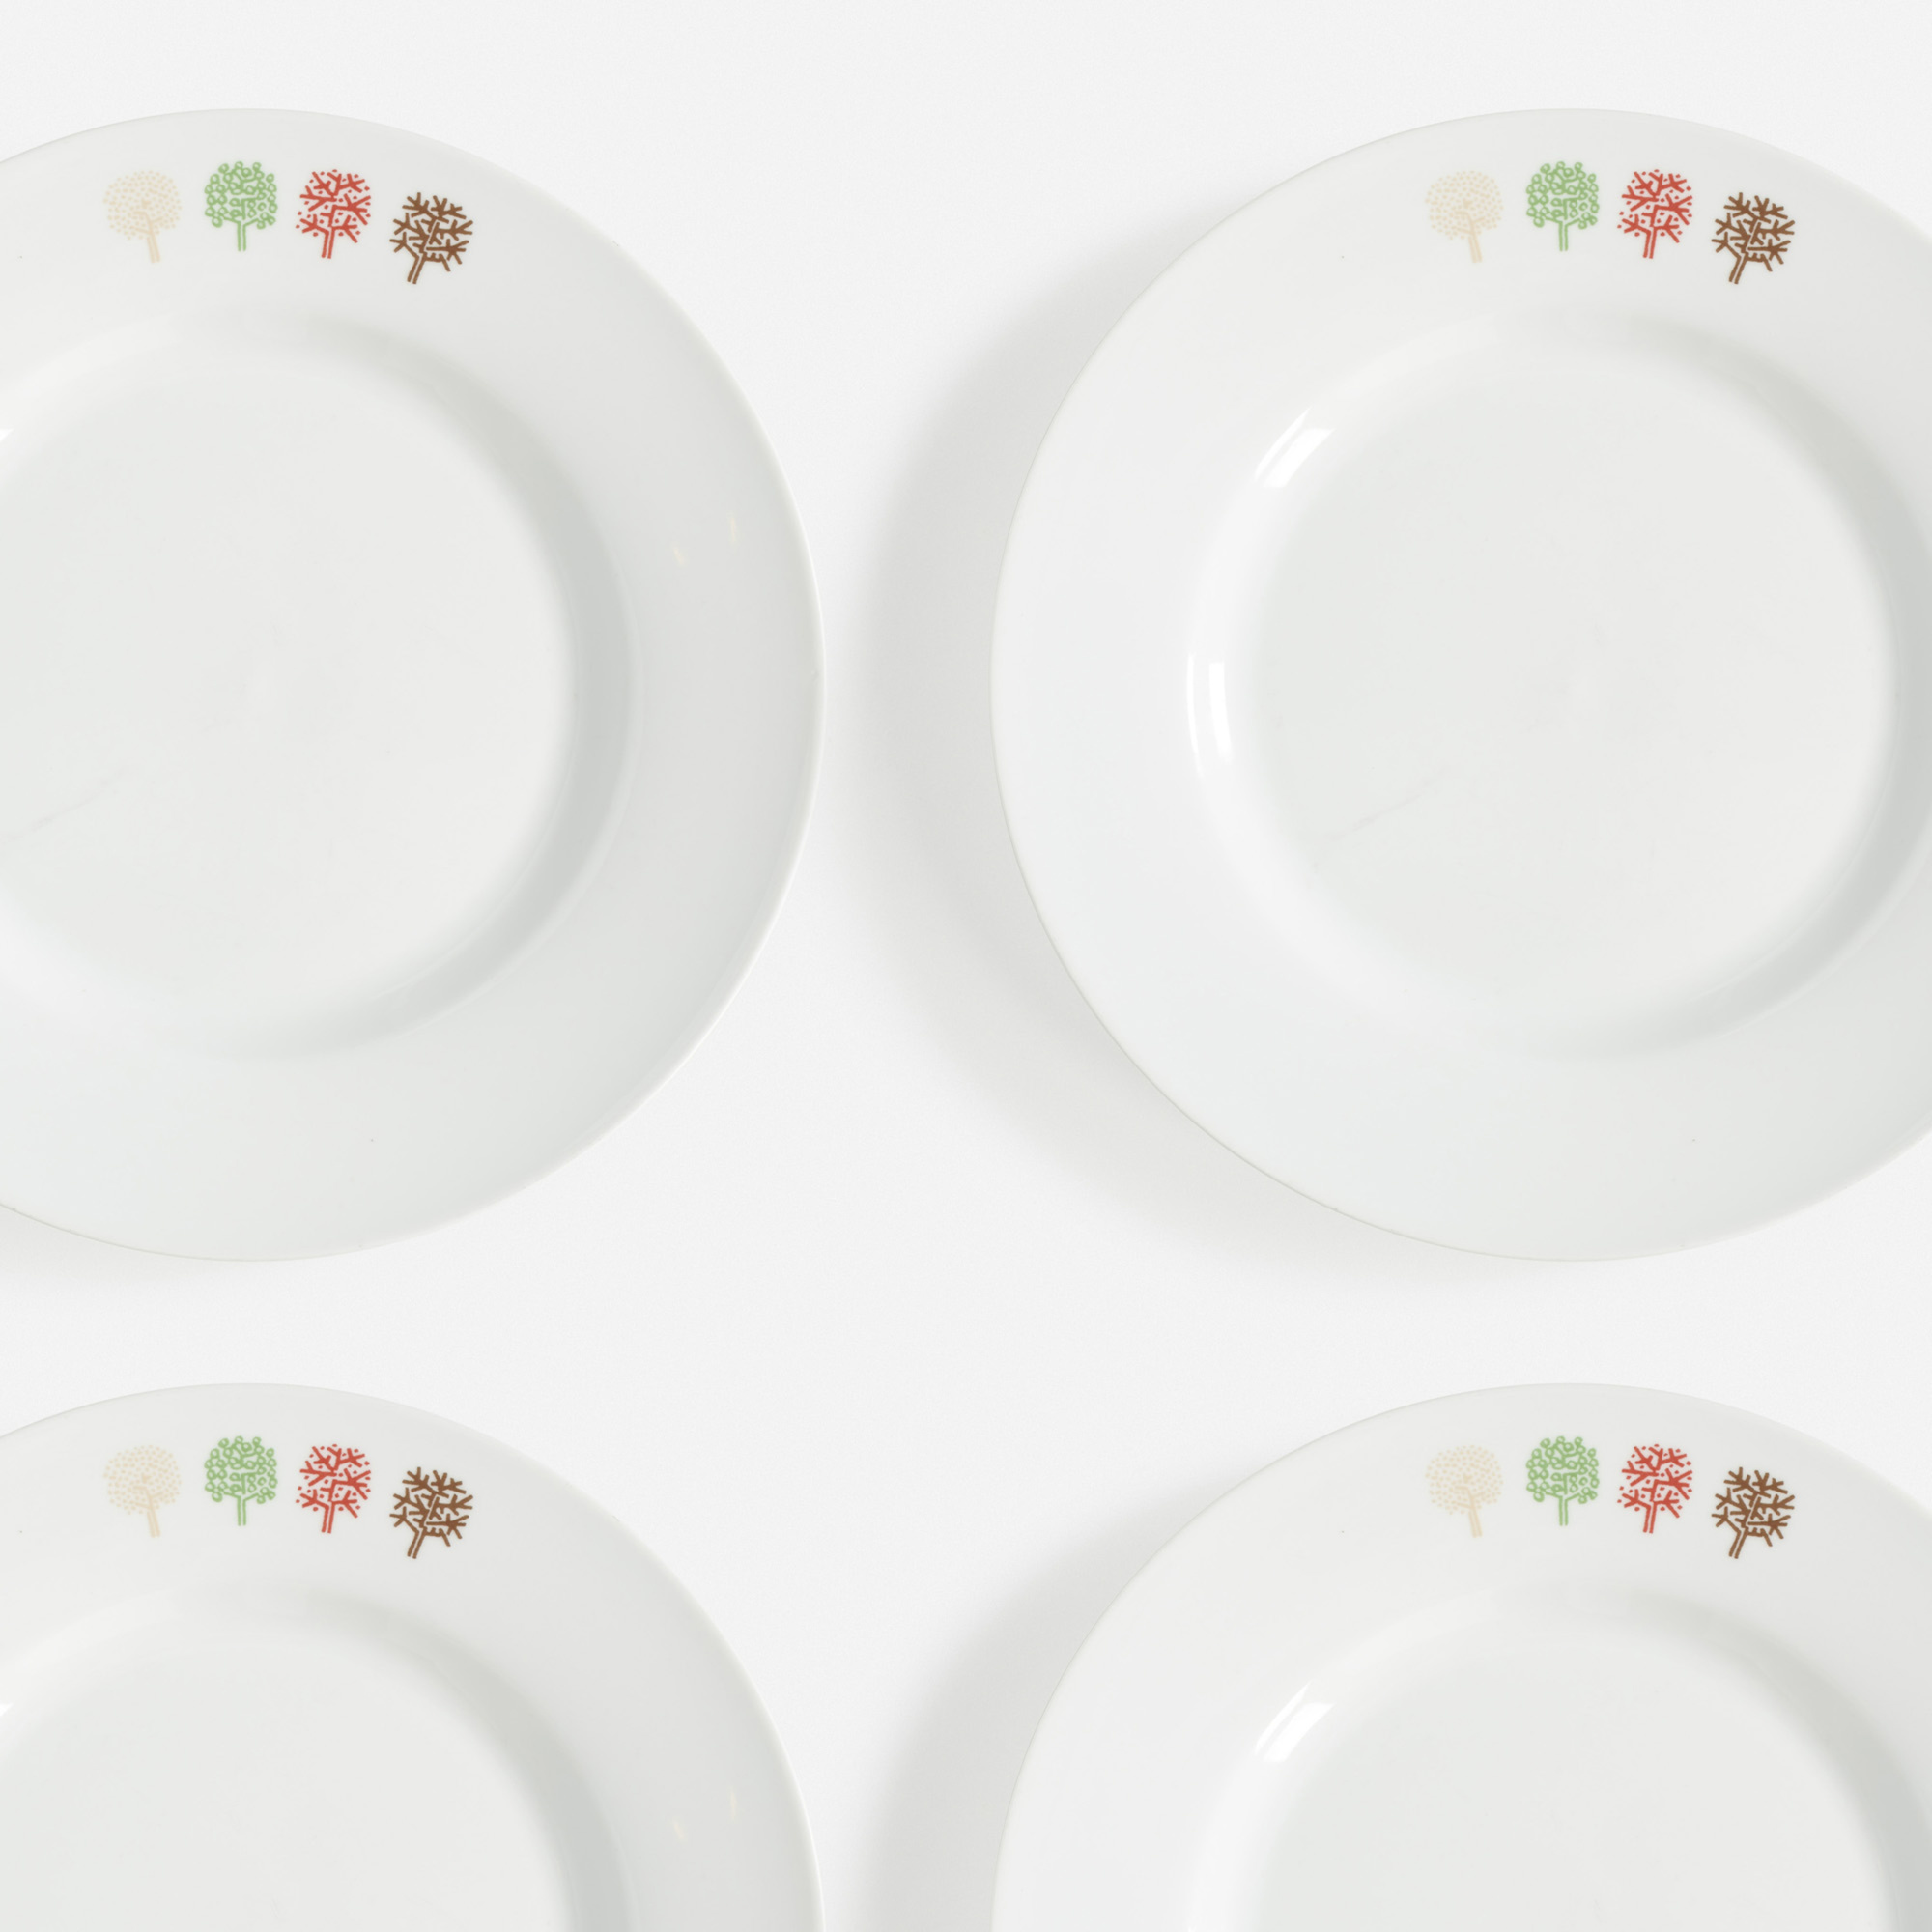 307:  / Four Seasons plates, set of twelve (1 of 1)